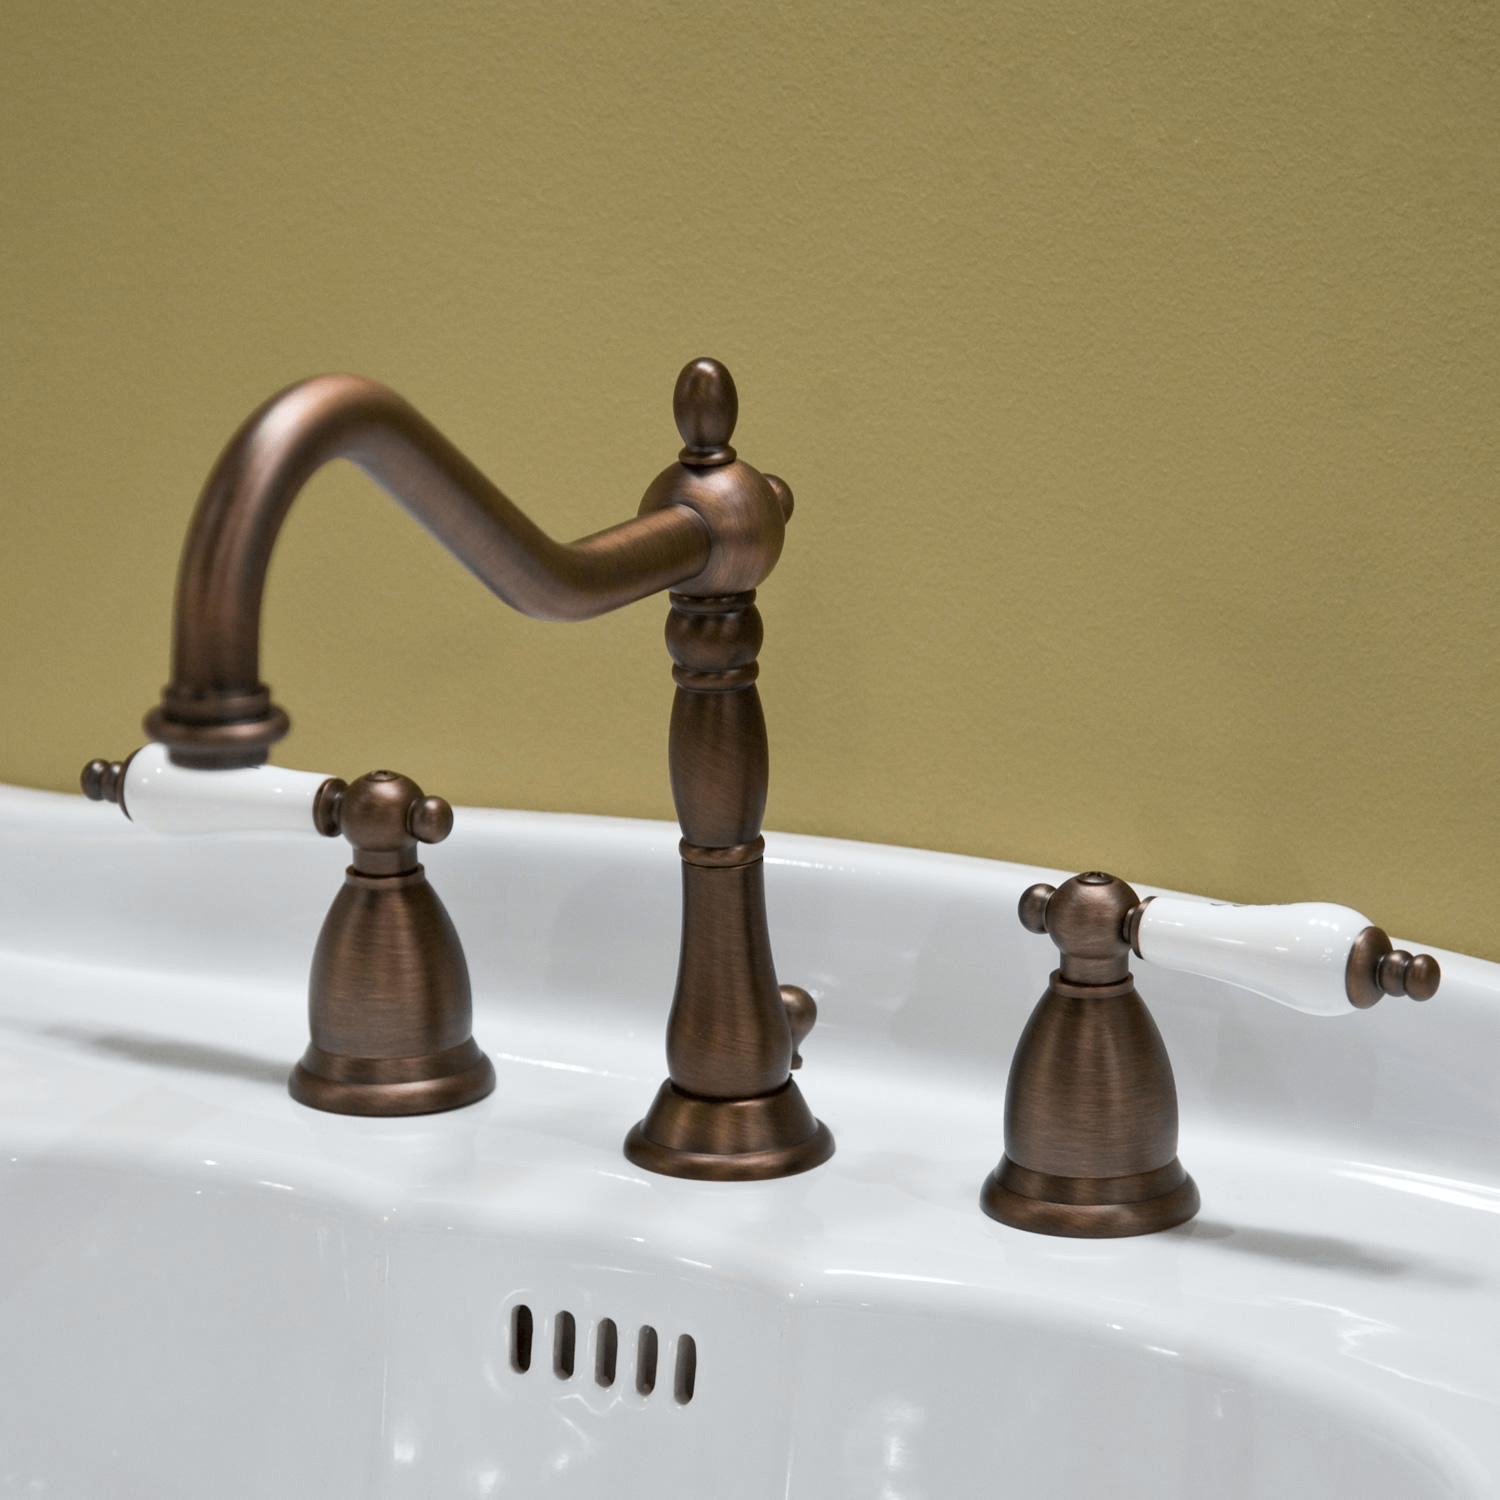 Bathroom Faucets porcelain lever handles